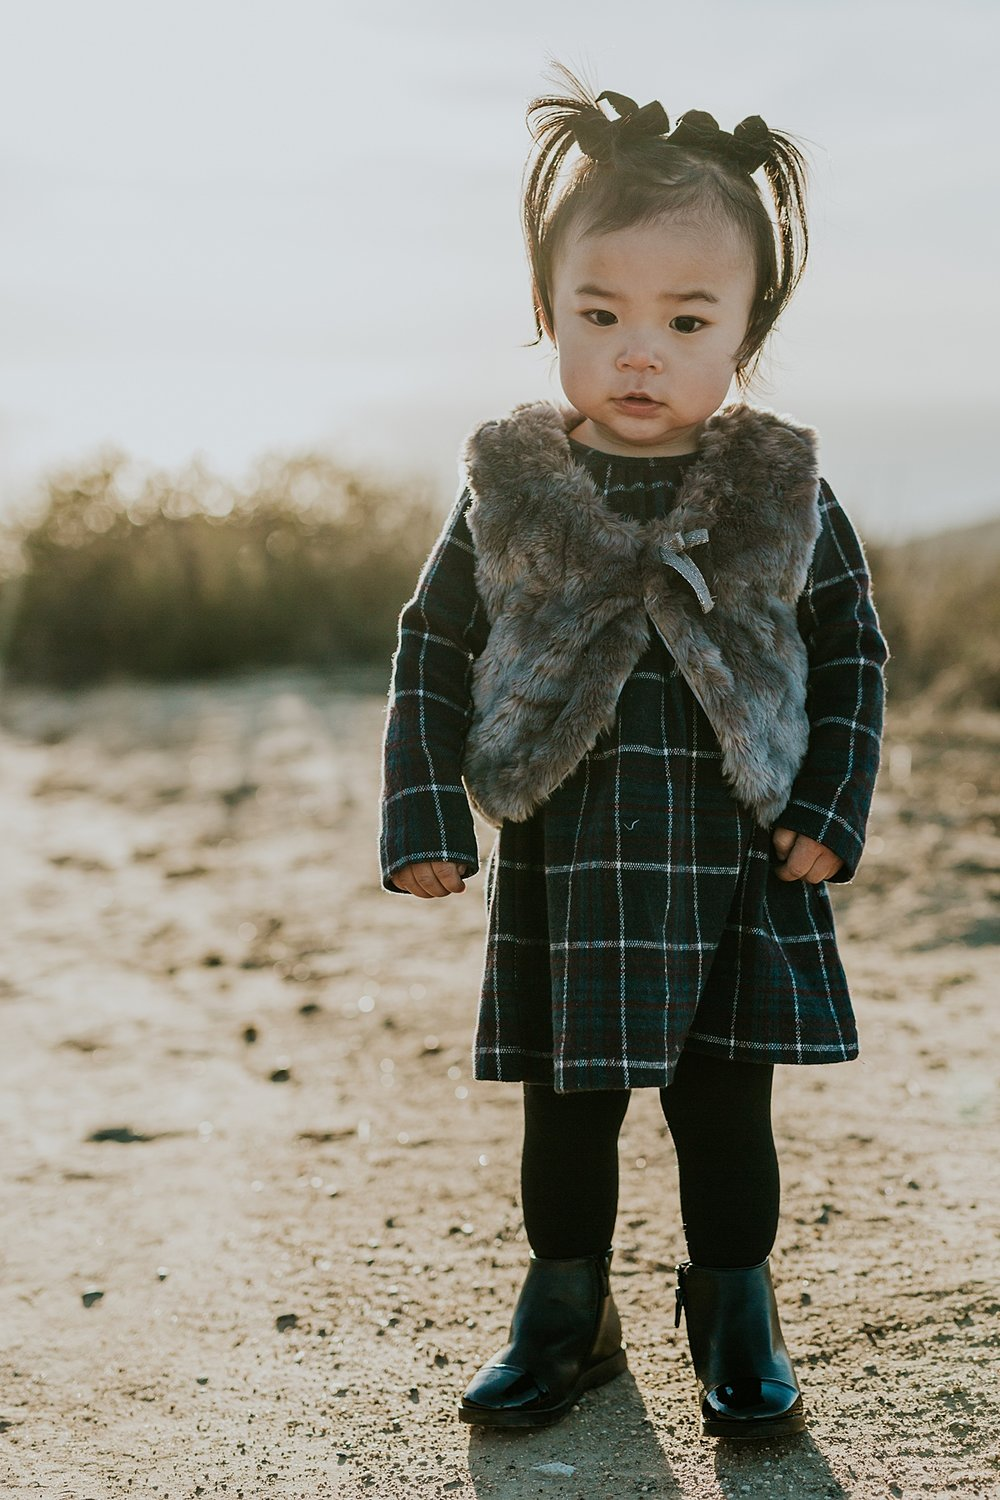 Orange County family photographer. Portrait of young toddler in her beautiful black boots standing on dirt road during outdoor during family photo session at Top of the World Laguna Beach